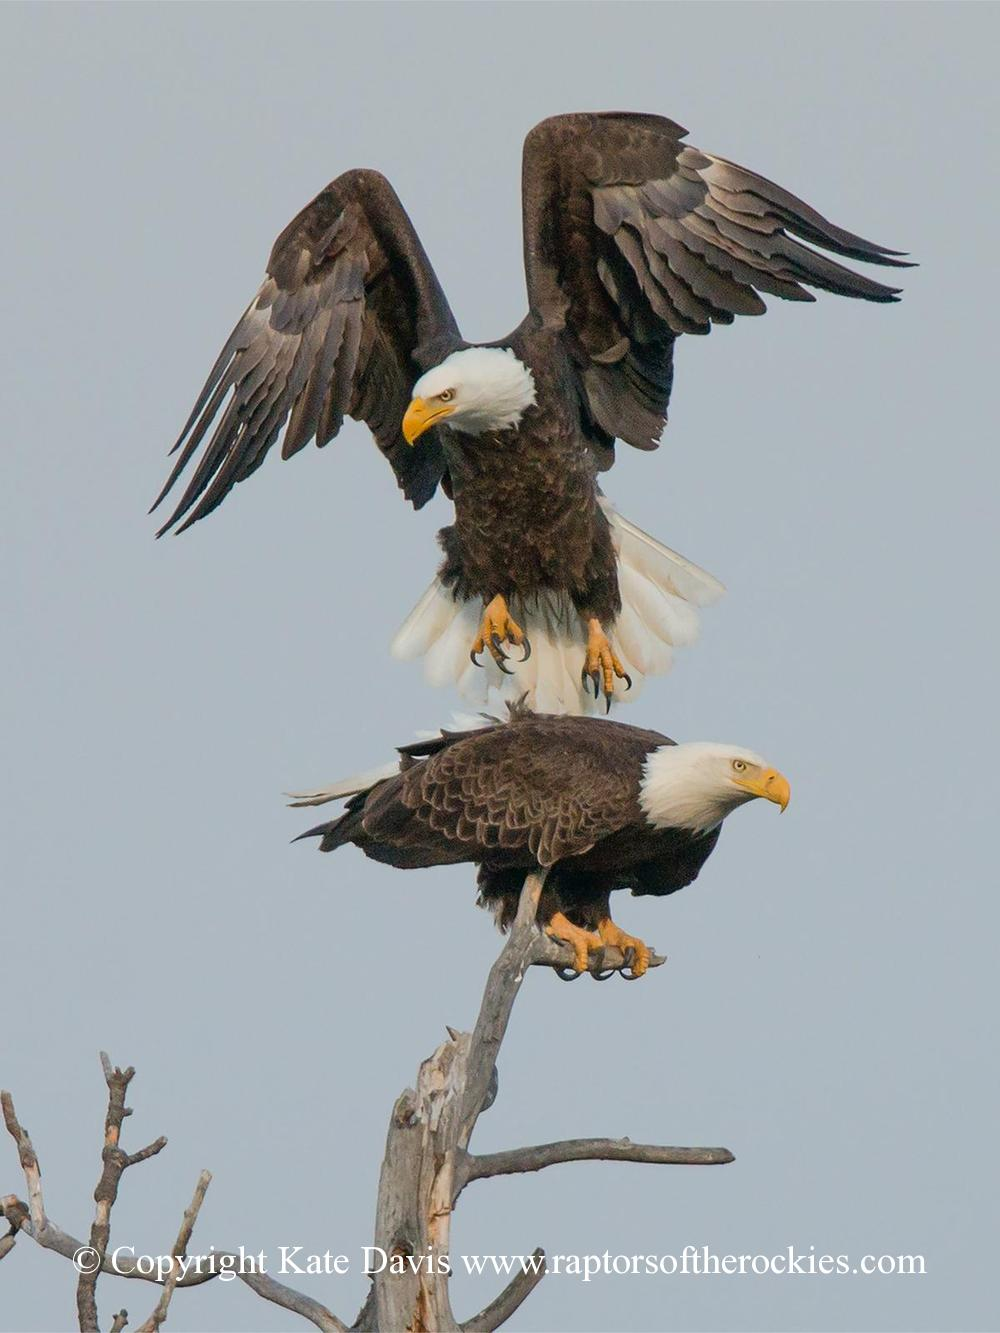 American Bald Eagle - May Day Pair - Golden Eagle - He landed on her back for a brief moment